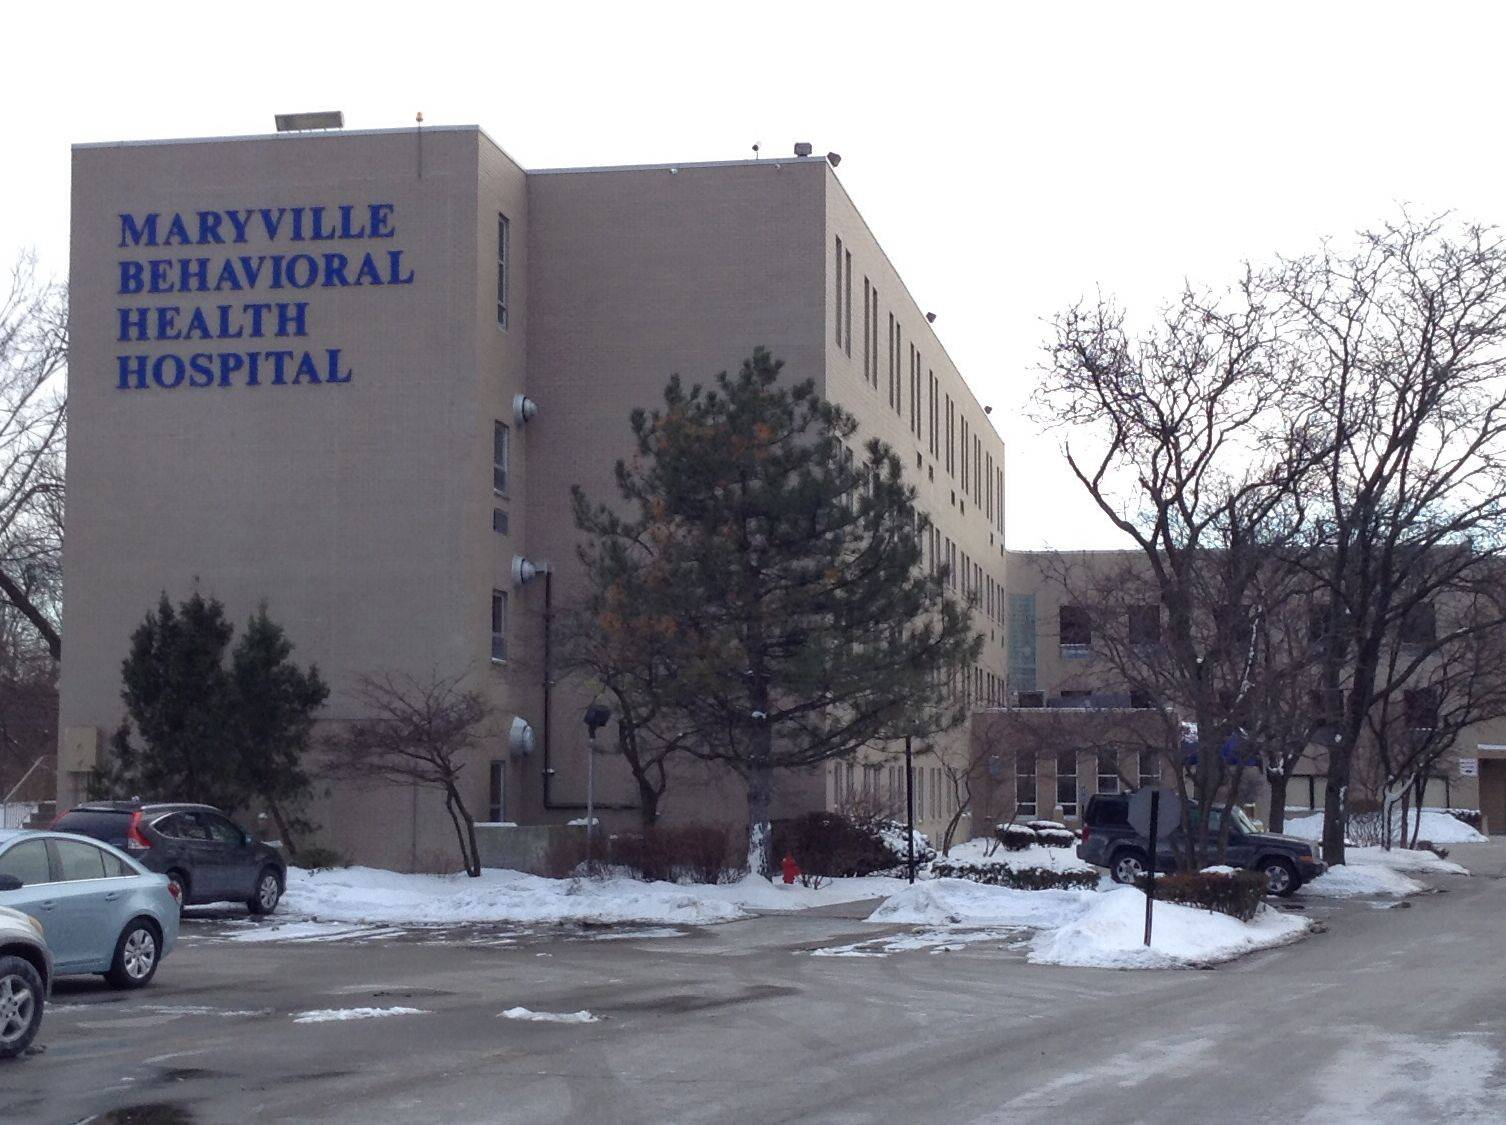 Maryville Behavioral Health Hospital to close